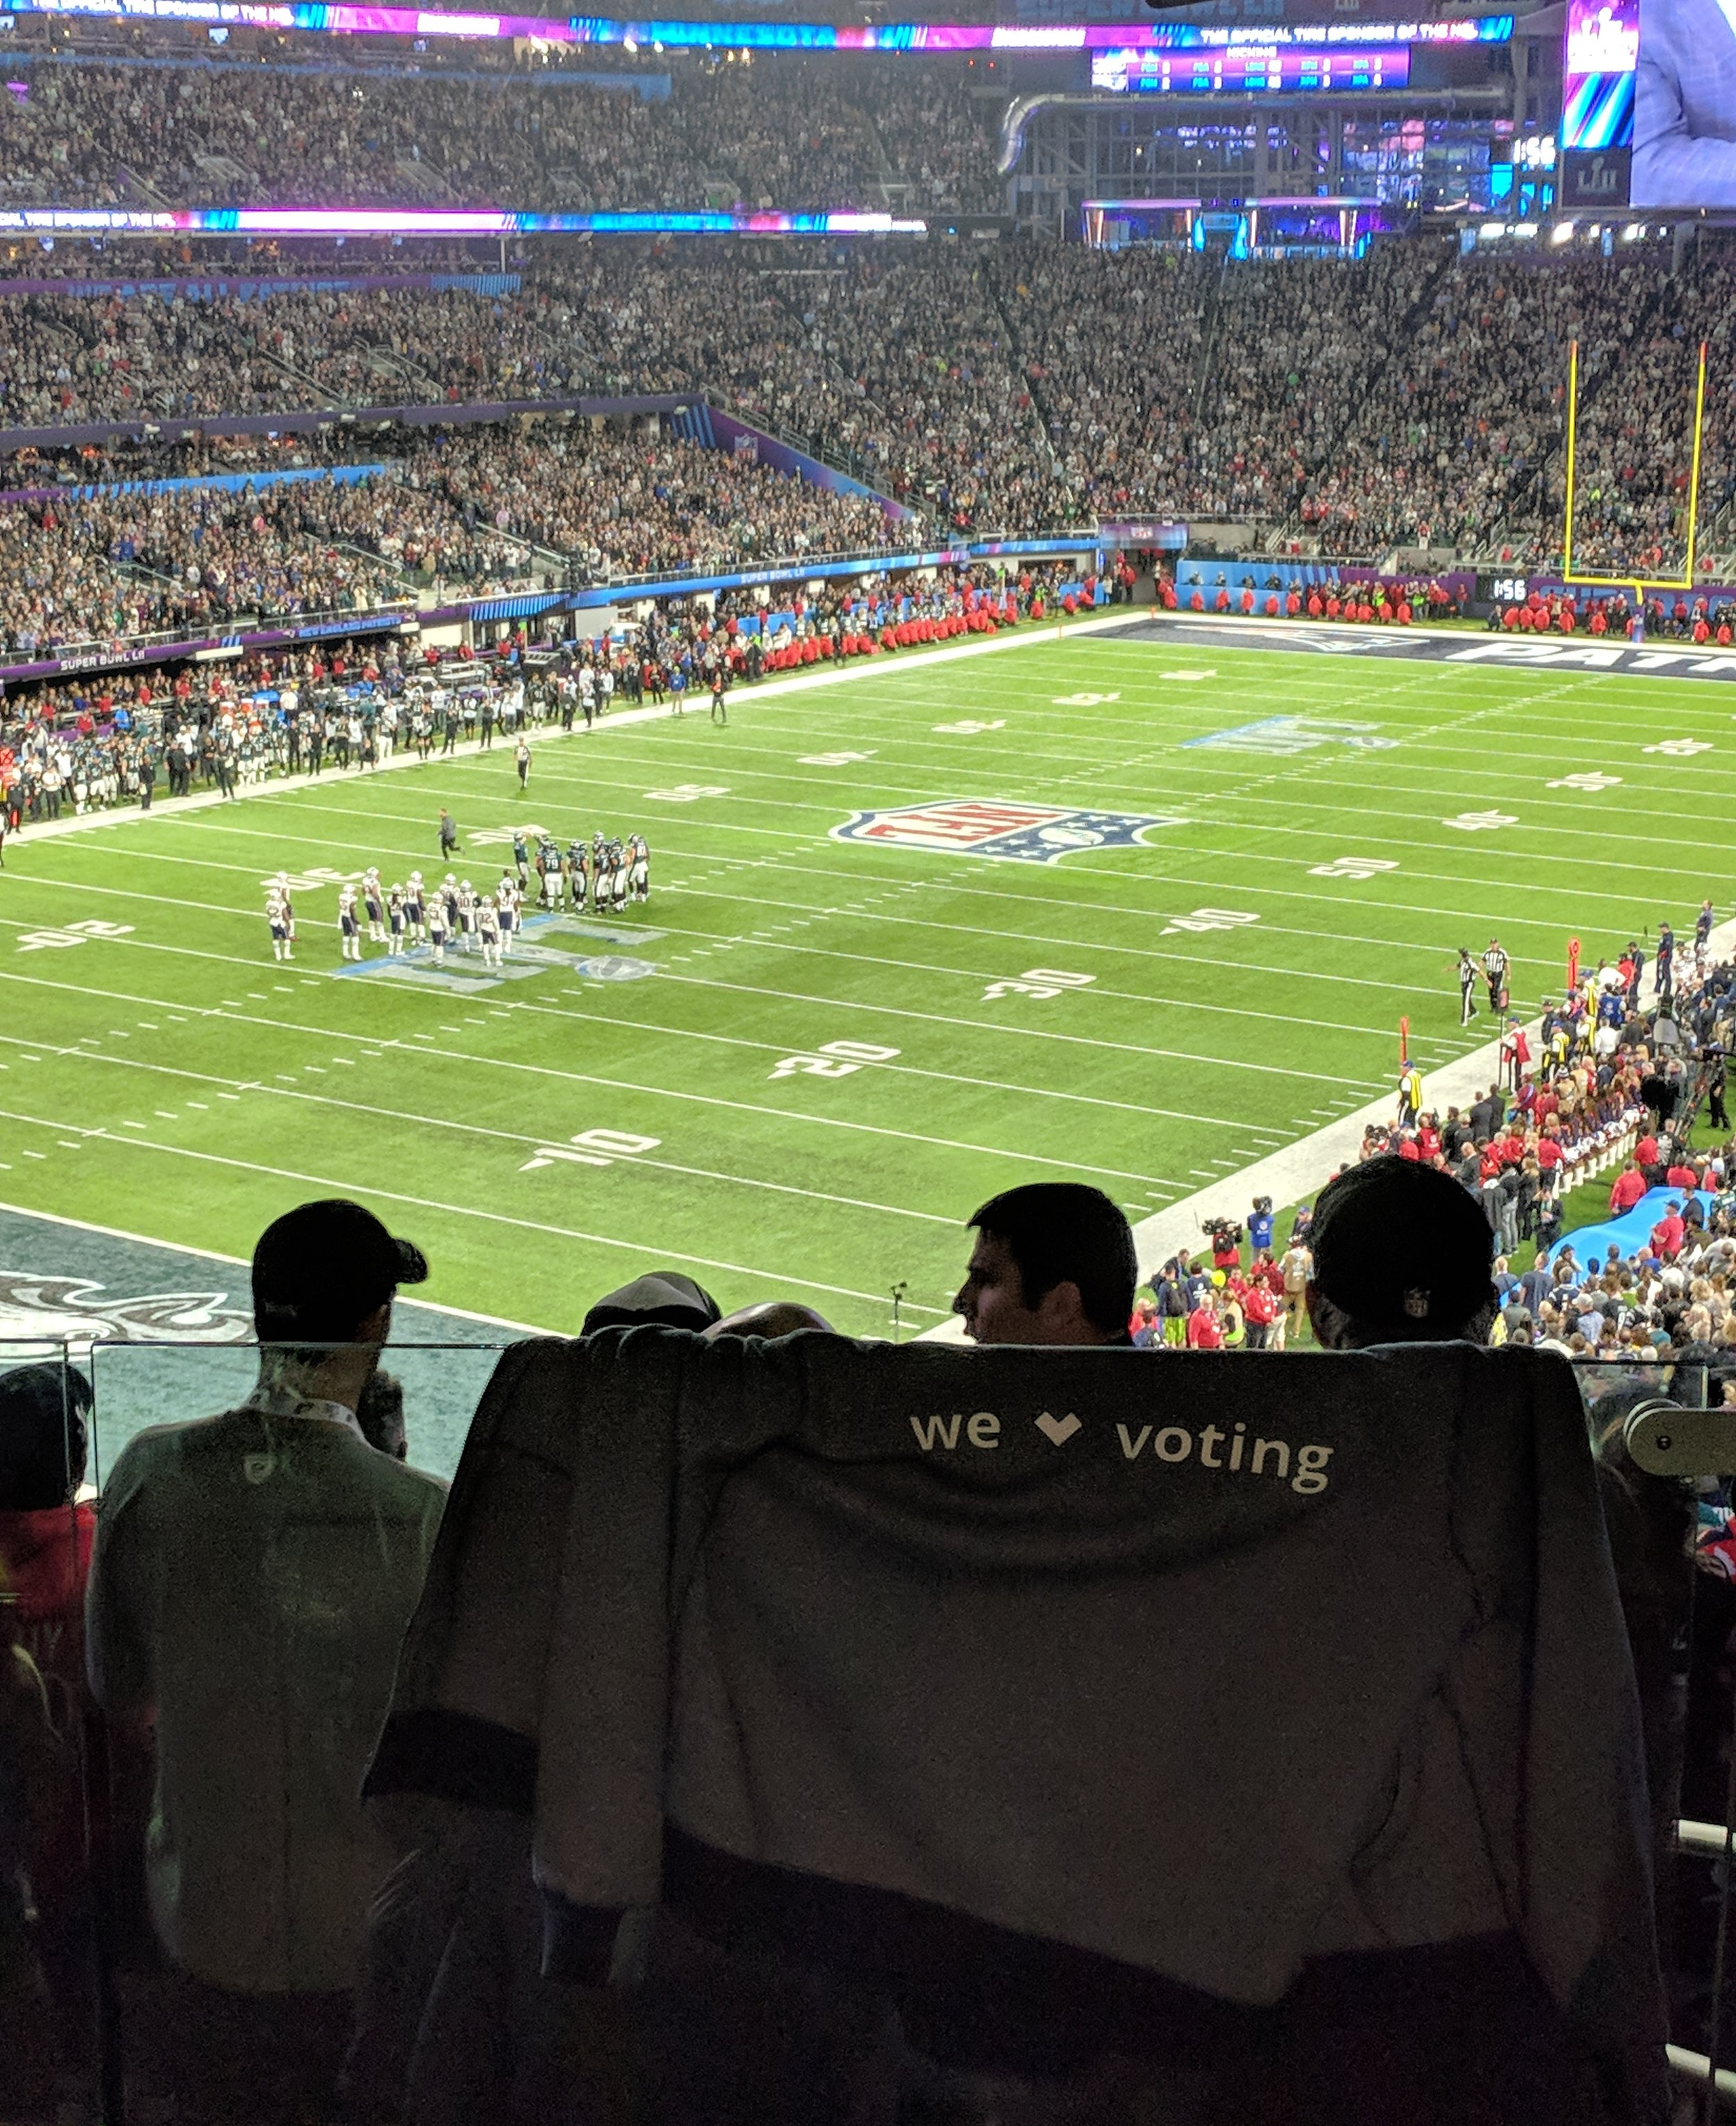 The TurboVote slogan represented well at the Super Bowl. You'd be surprised how inexpensive this advertising was.